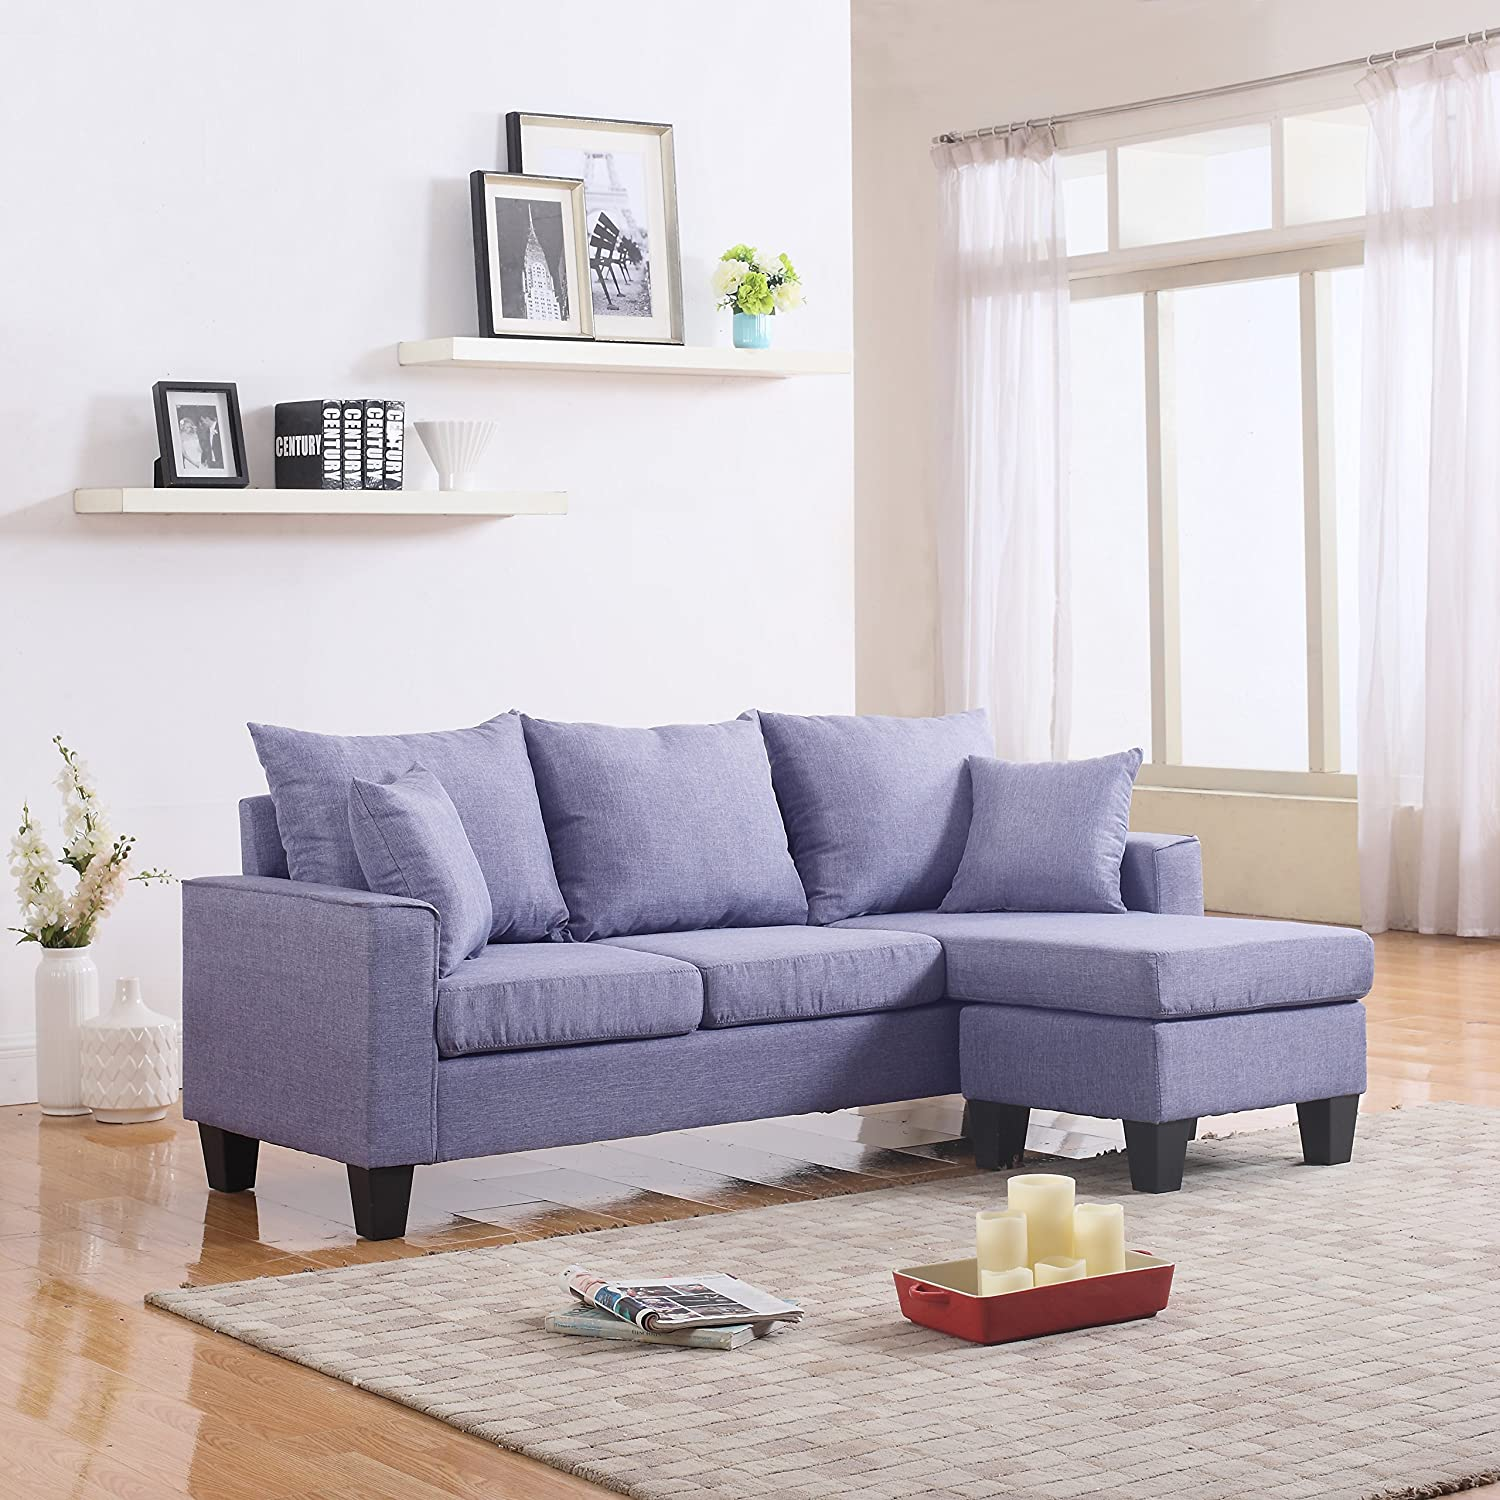 Amazon.com Modern Linen Fabric Small Space Sectional Sofa with Reversible Chaise (Light Grey) Kitchen u0026 Dining : small sectional sofas with chaise - Sectionals, Sofas & Couches